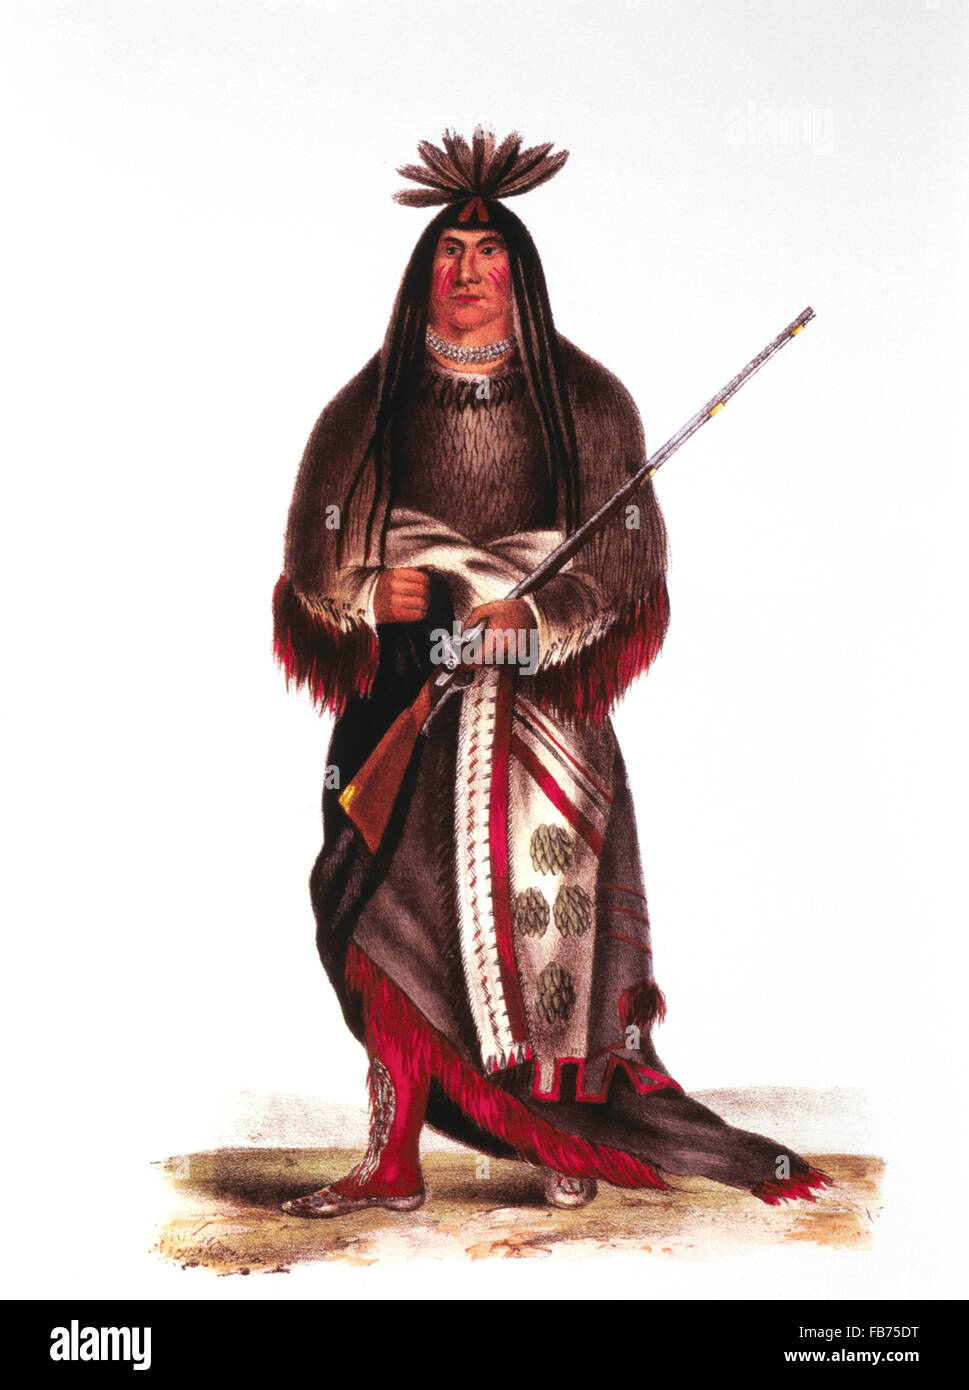 Wanata, The Charger, (1795-1848), Western Dakota Sioux Chief, Painting by Charles King Bird, circa 1826 - Stock Image